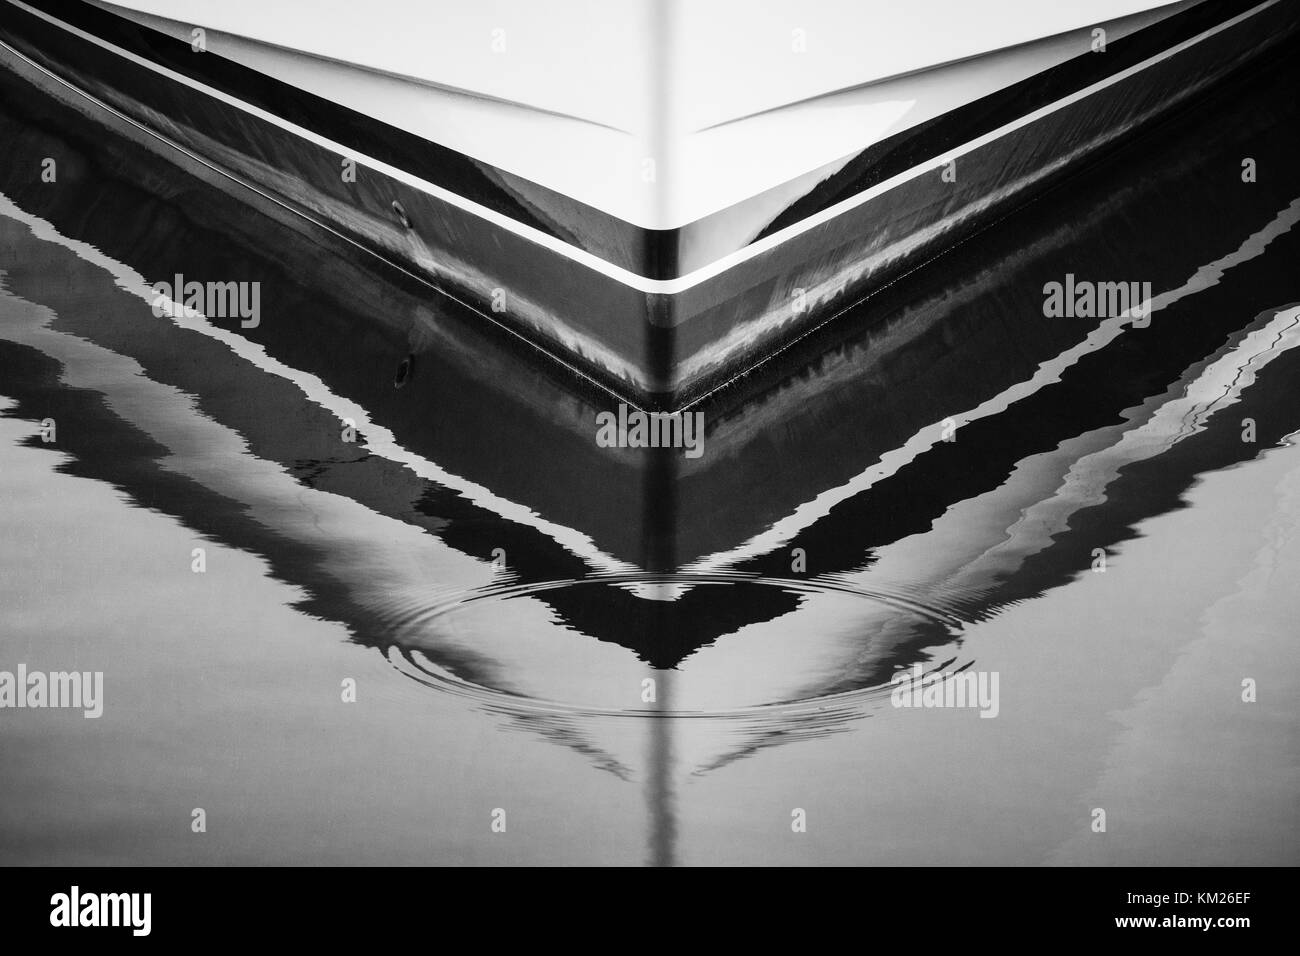 Ripples from a water drop mar the reflection of a yacht's bow on the surface of the water. - Stock Image